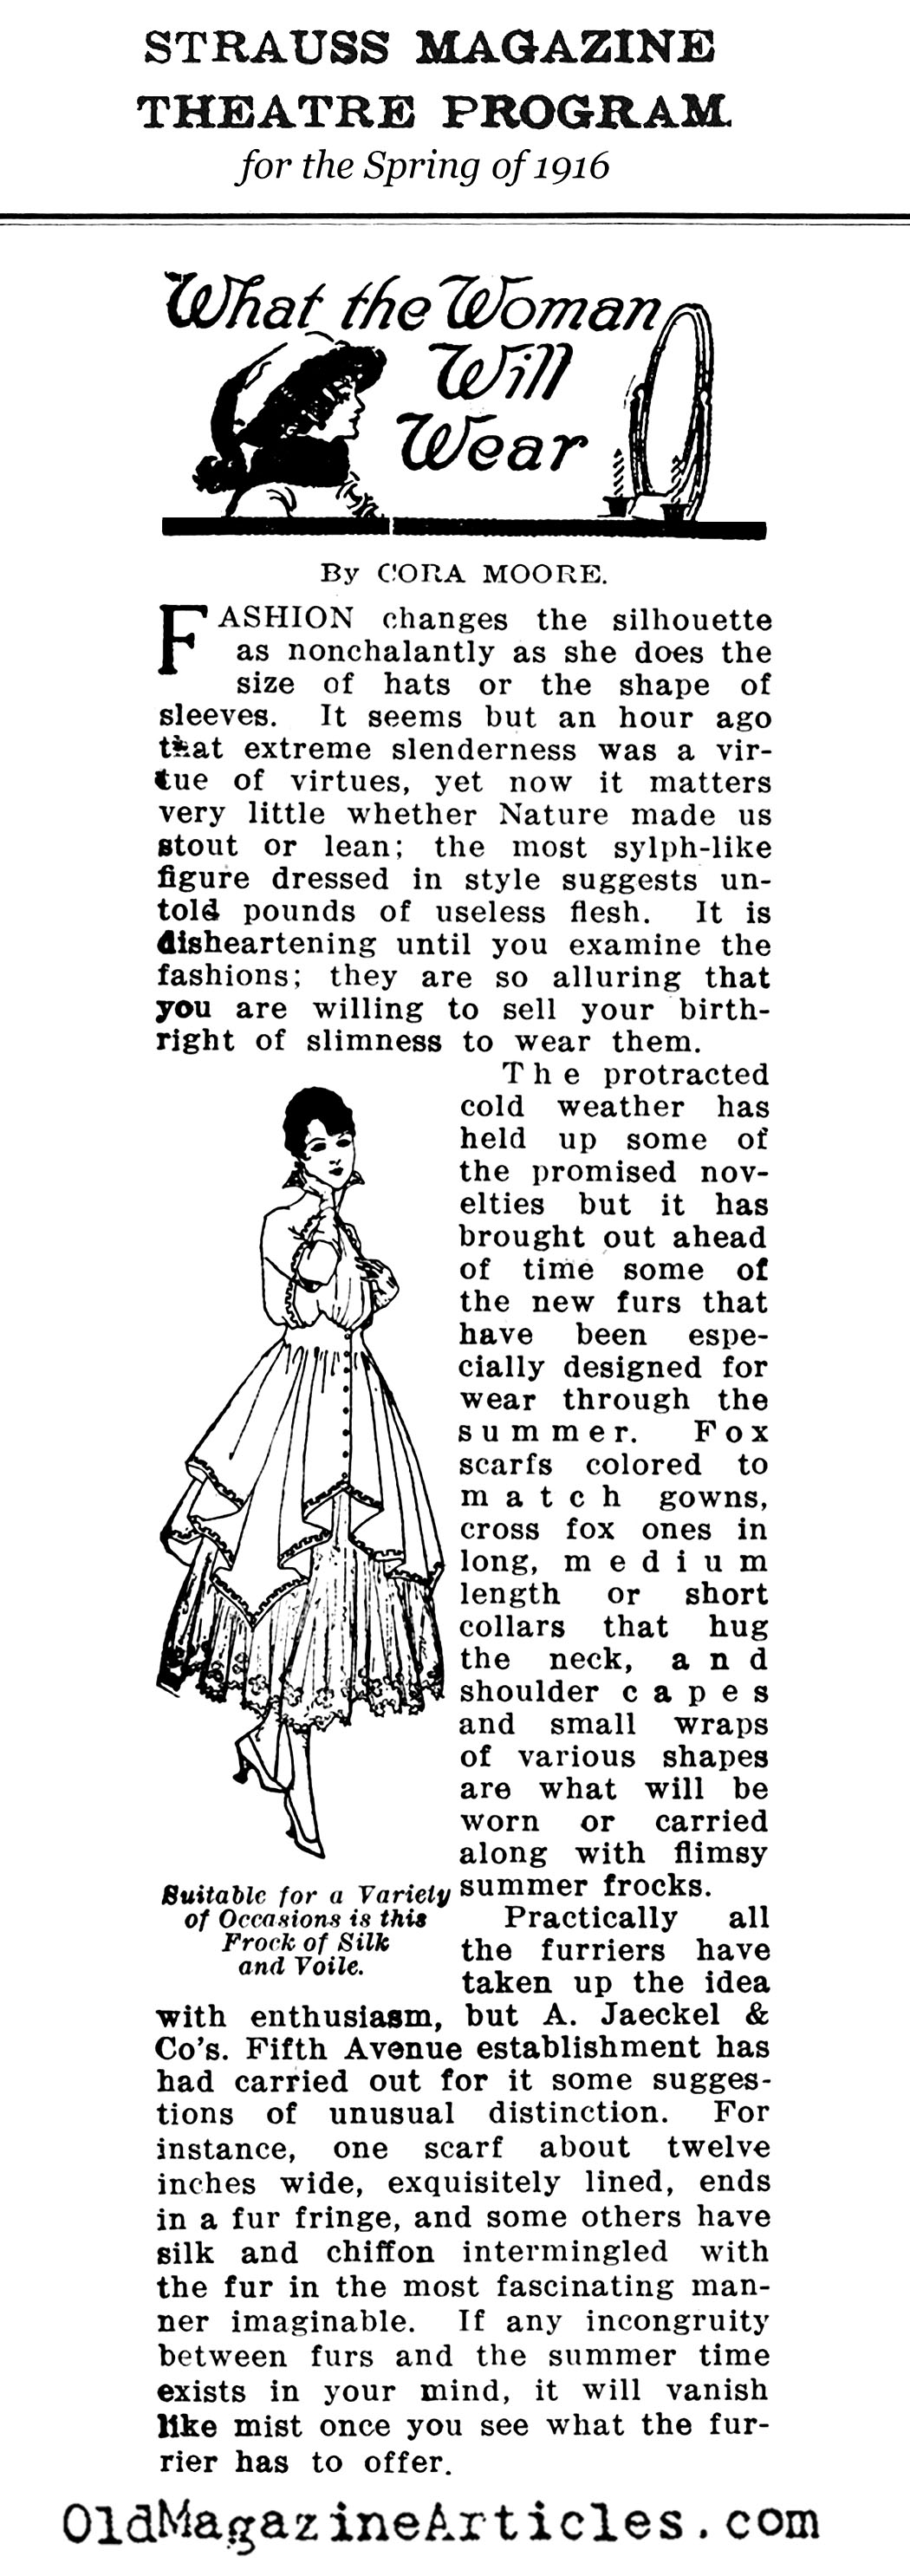 World War I Fashions in the Spring of 1916 (Strauss Magazine, 1916)